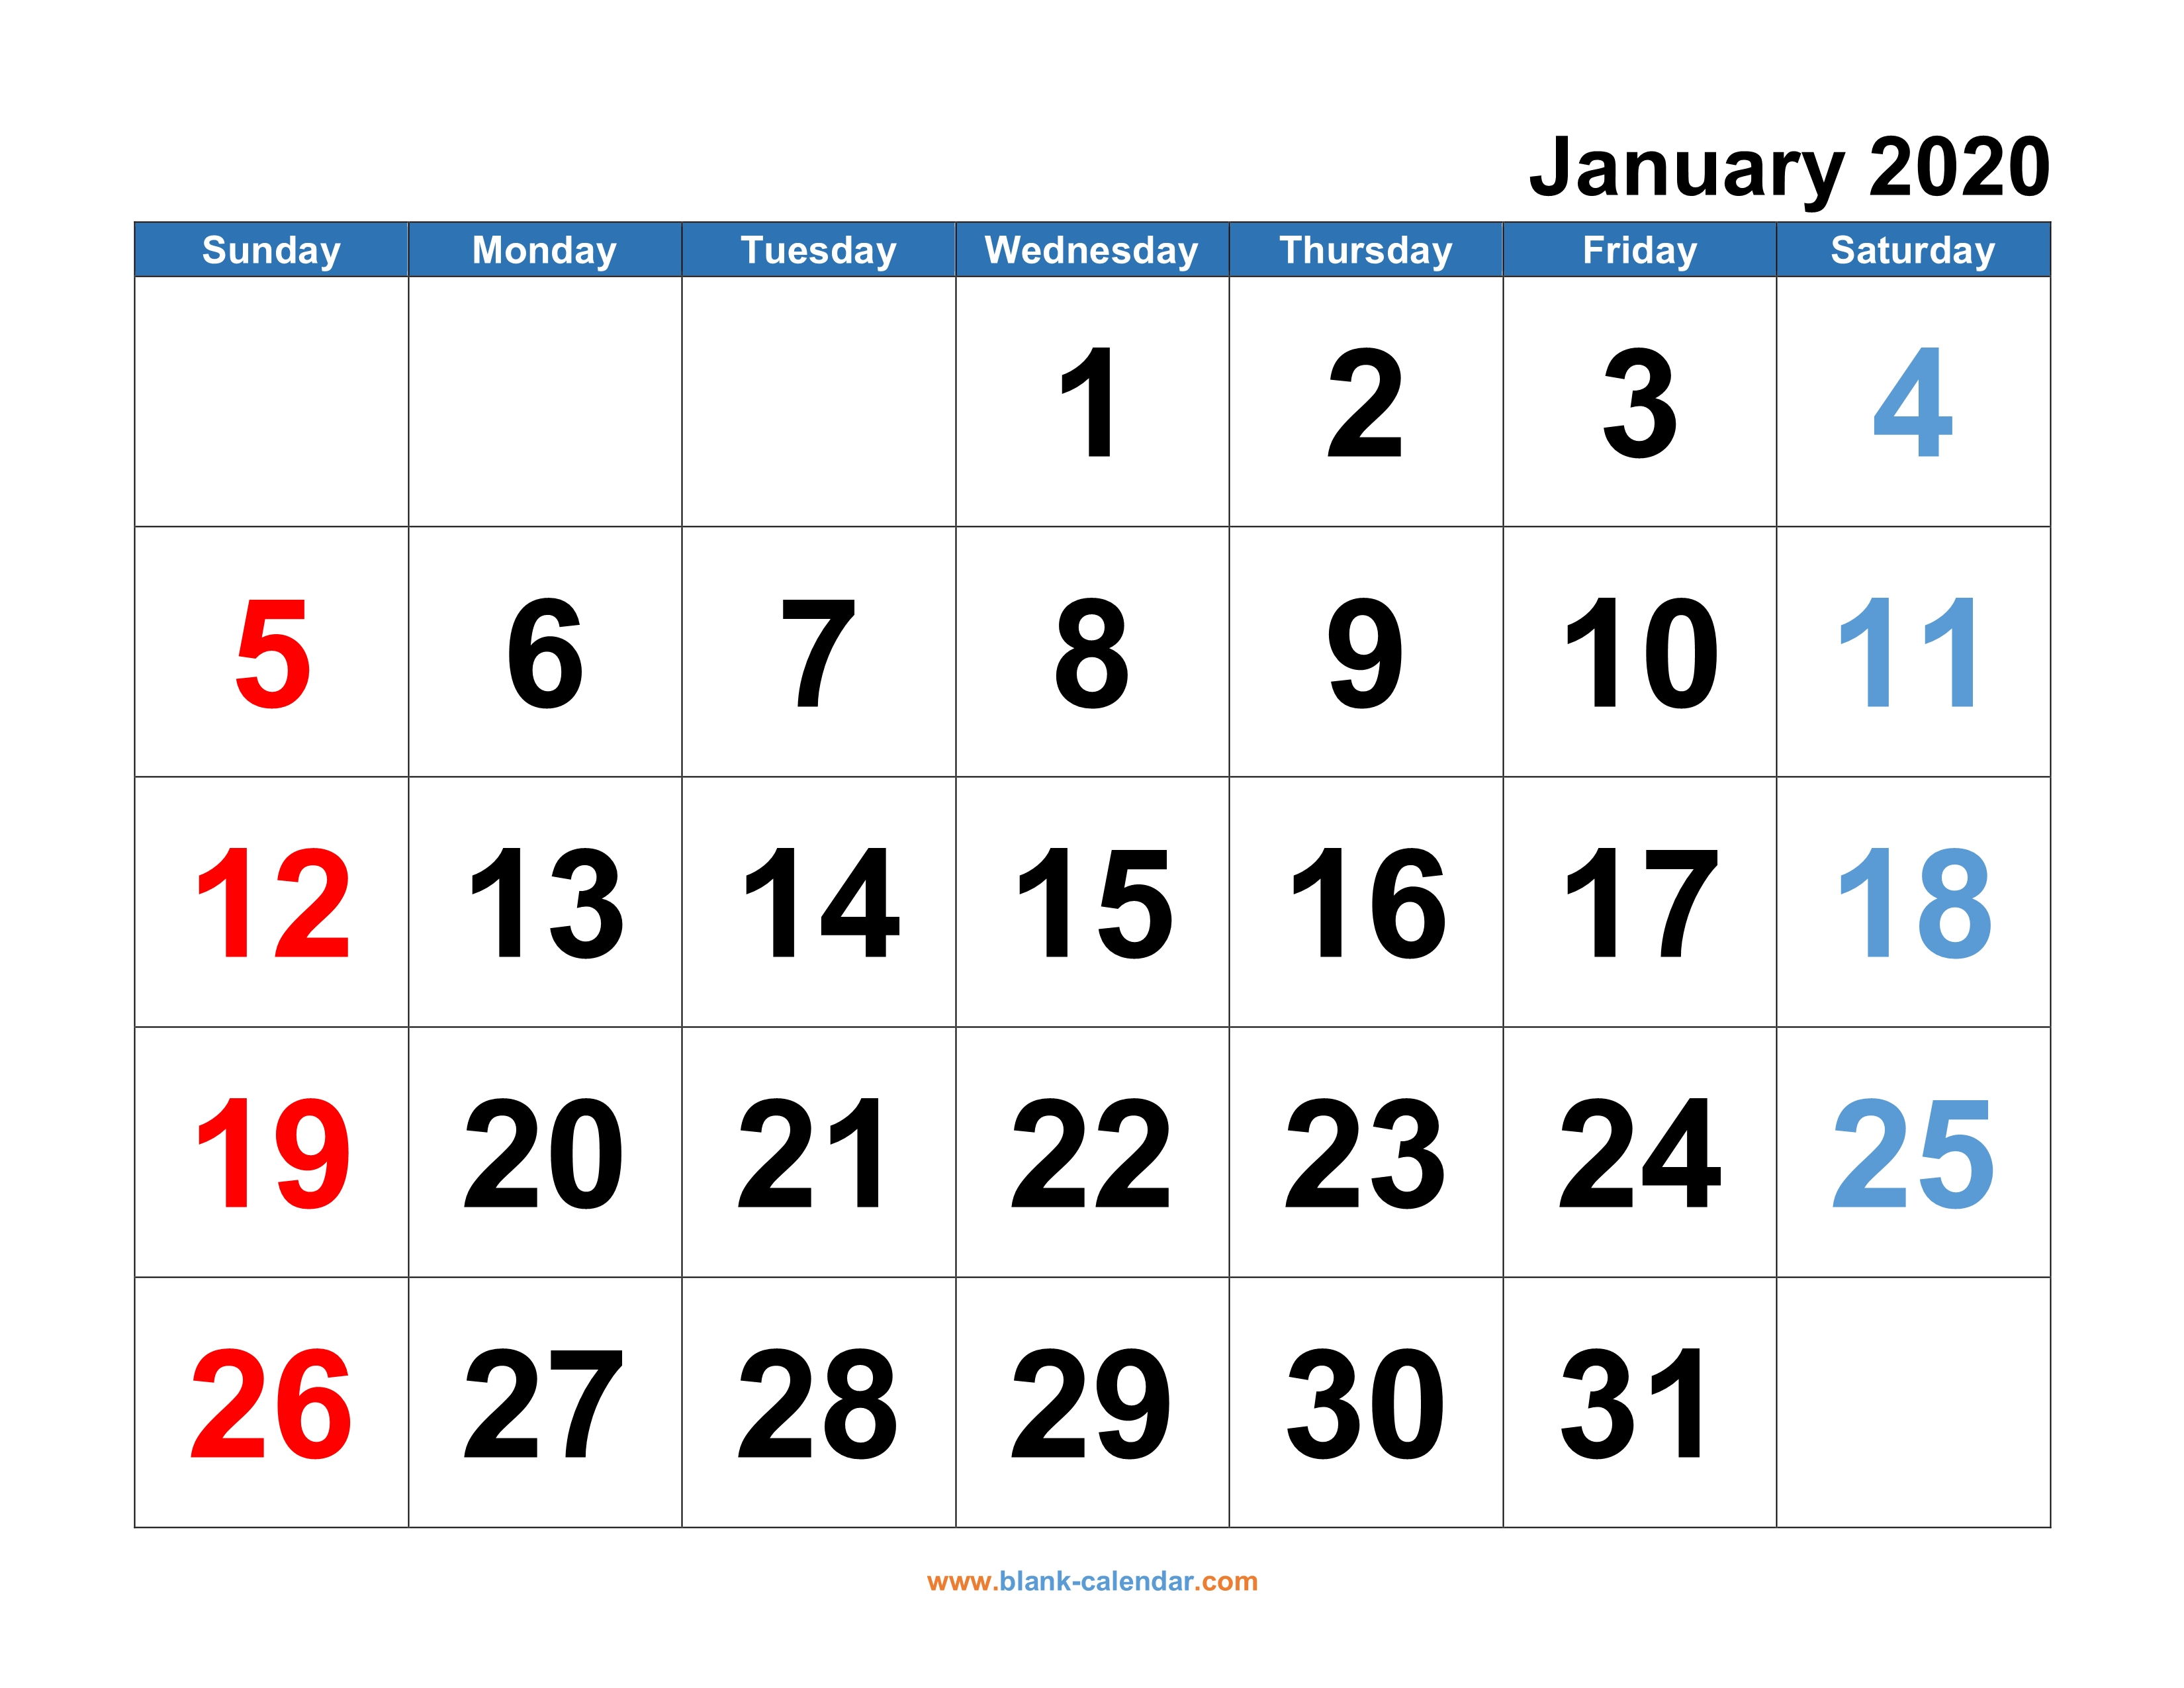 Monthly Calendar 2020 | Free Download, Editable And Printable with regard to 2020 Calendar You Can Edit